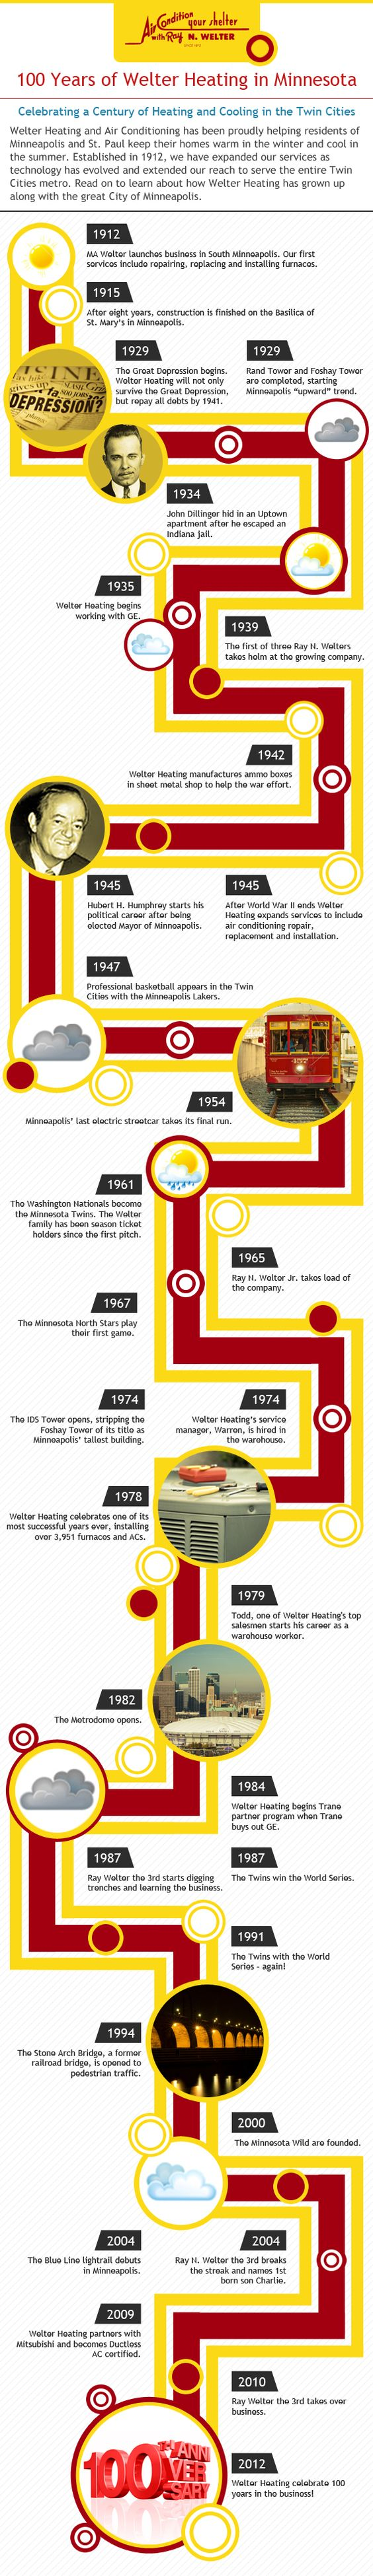 See Great Timeline Of Twin Cities And Welter Heating History As We